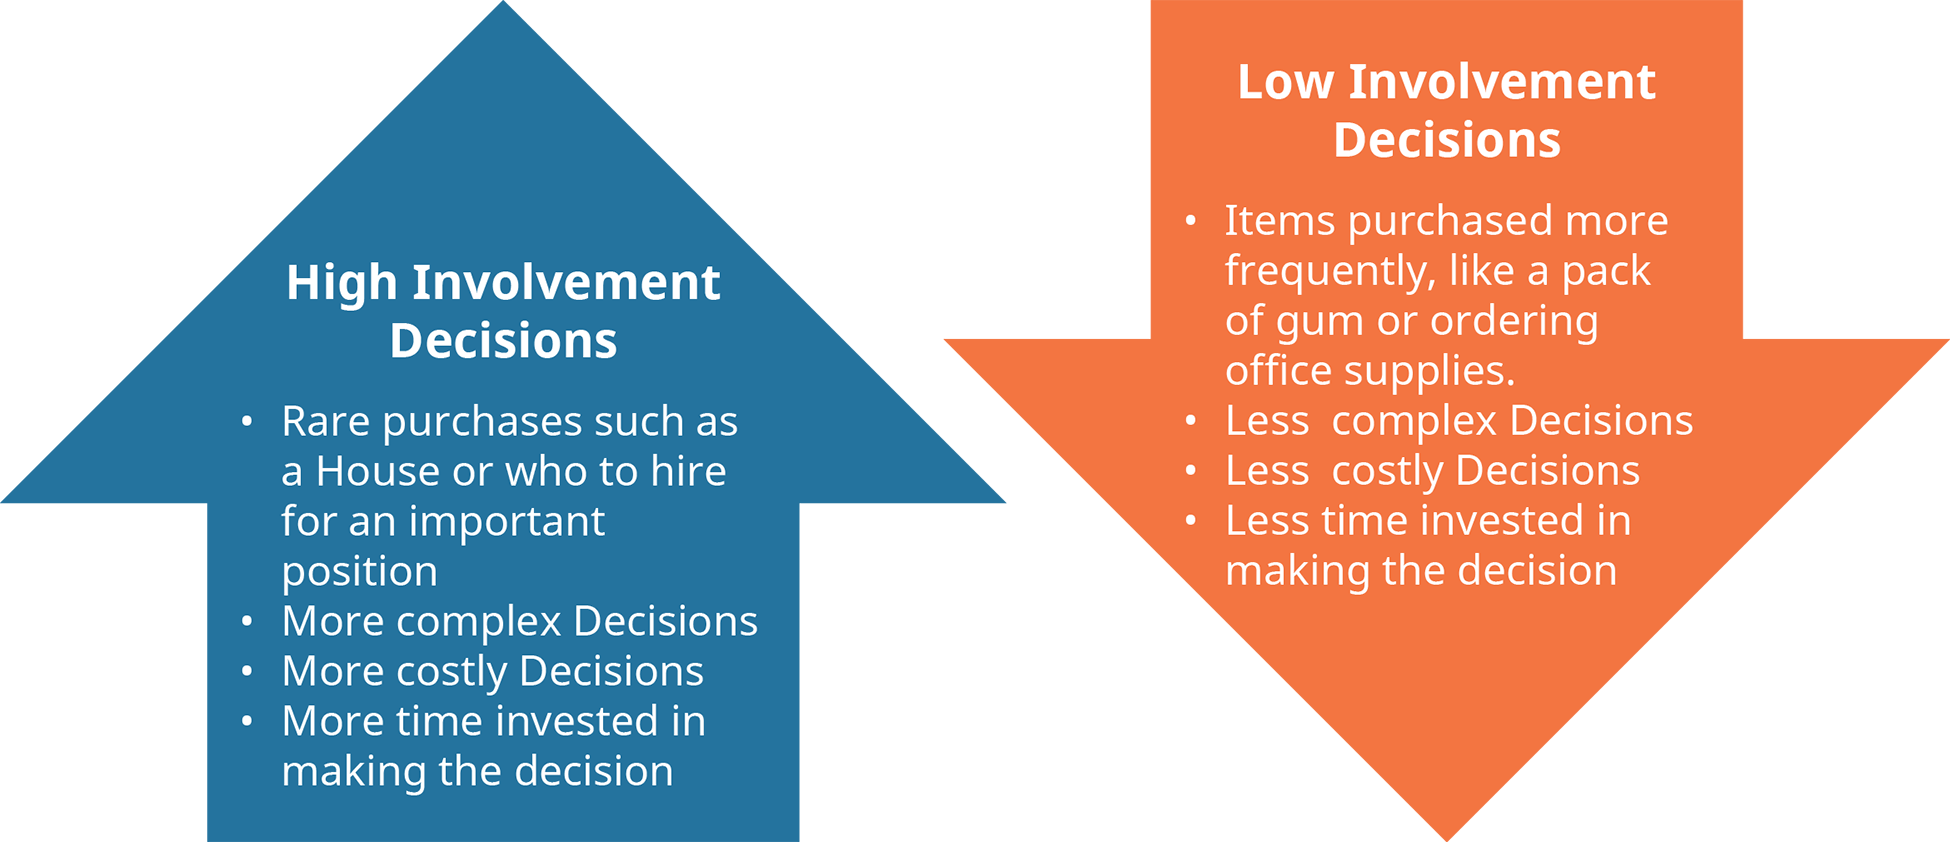 A diagram illustrates the different characteristics of high-involvement and low-involvement decisions.